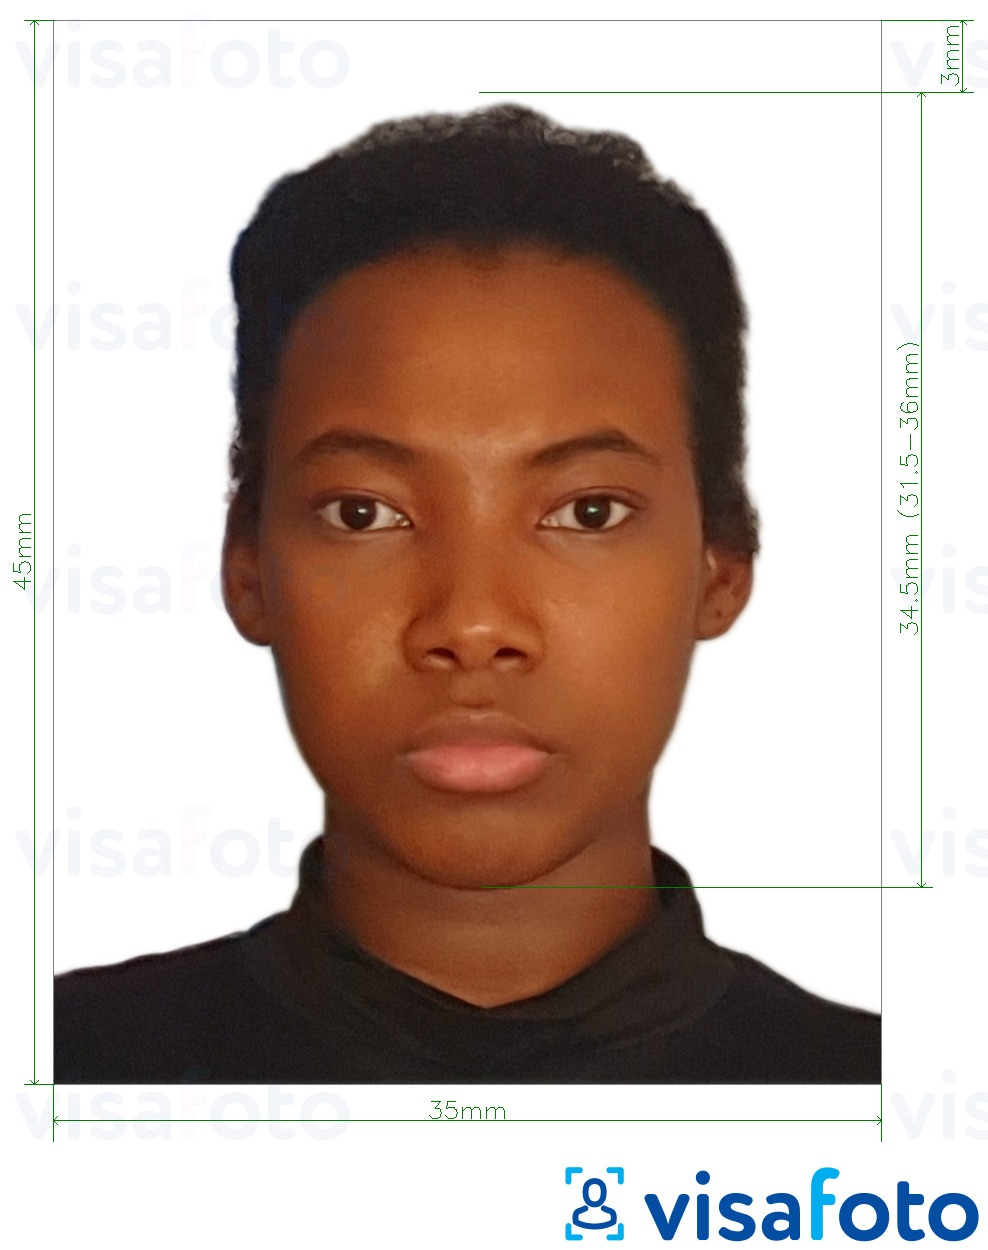 Example of photo for Burkina Faso passport 4.5x3.5 cm (45x35 mm) with exact size specification